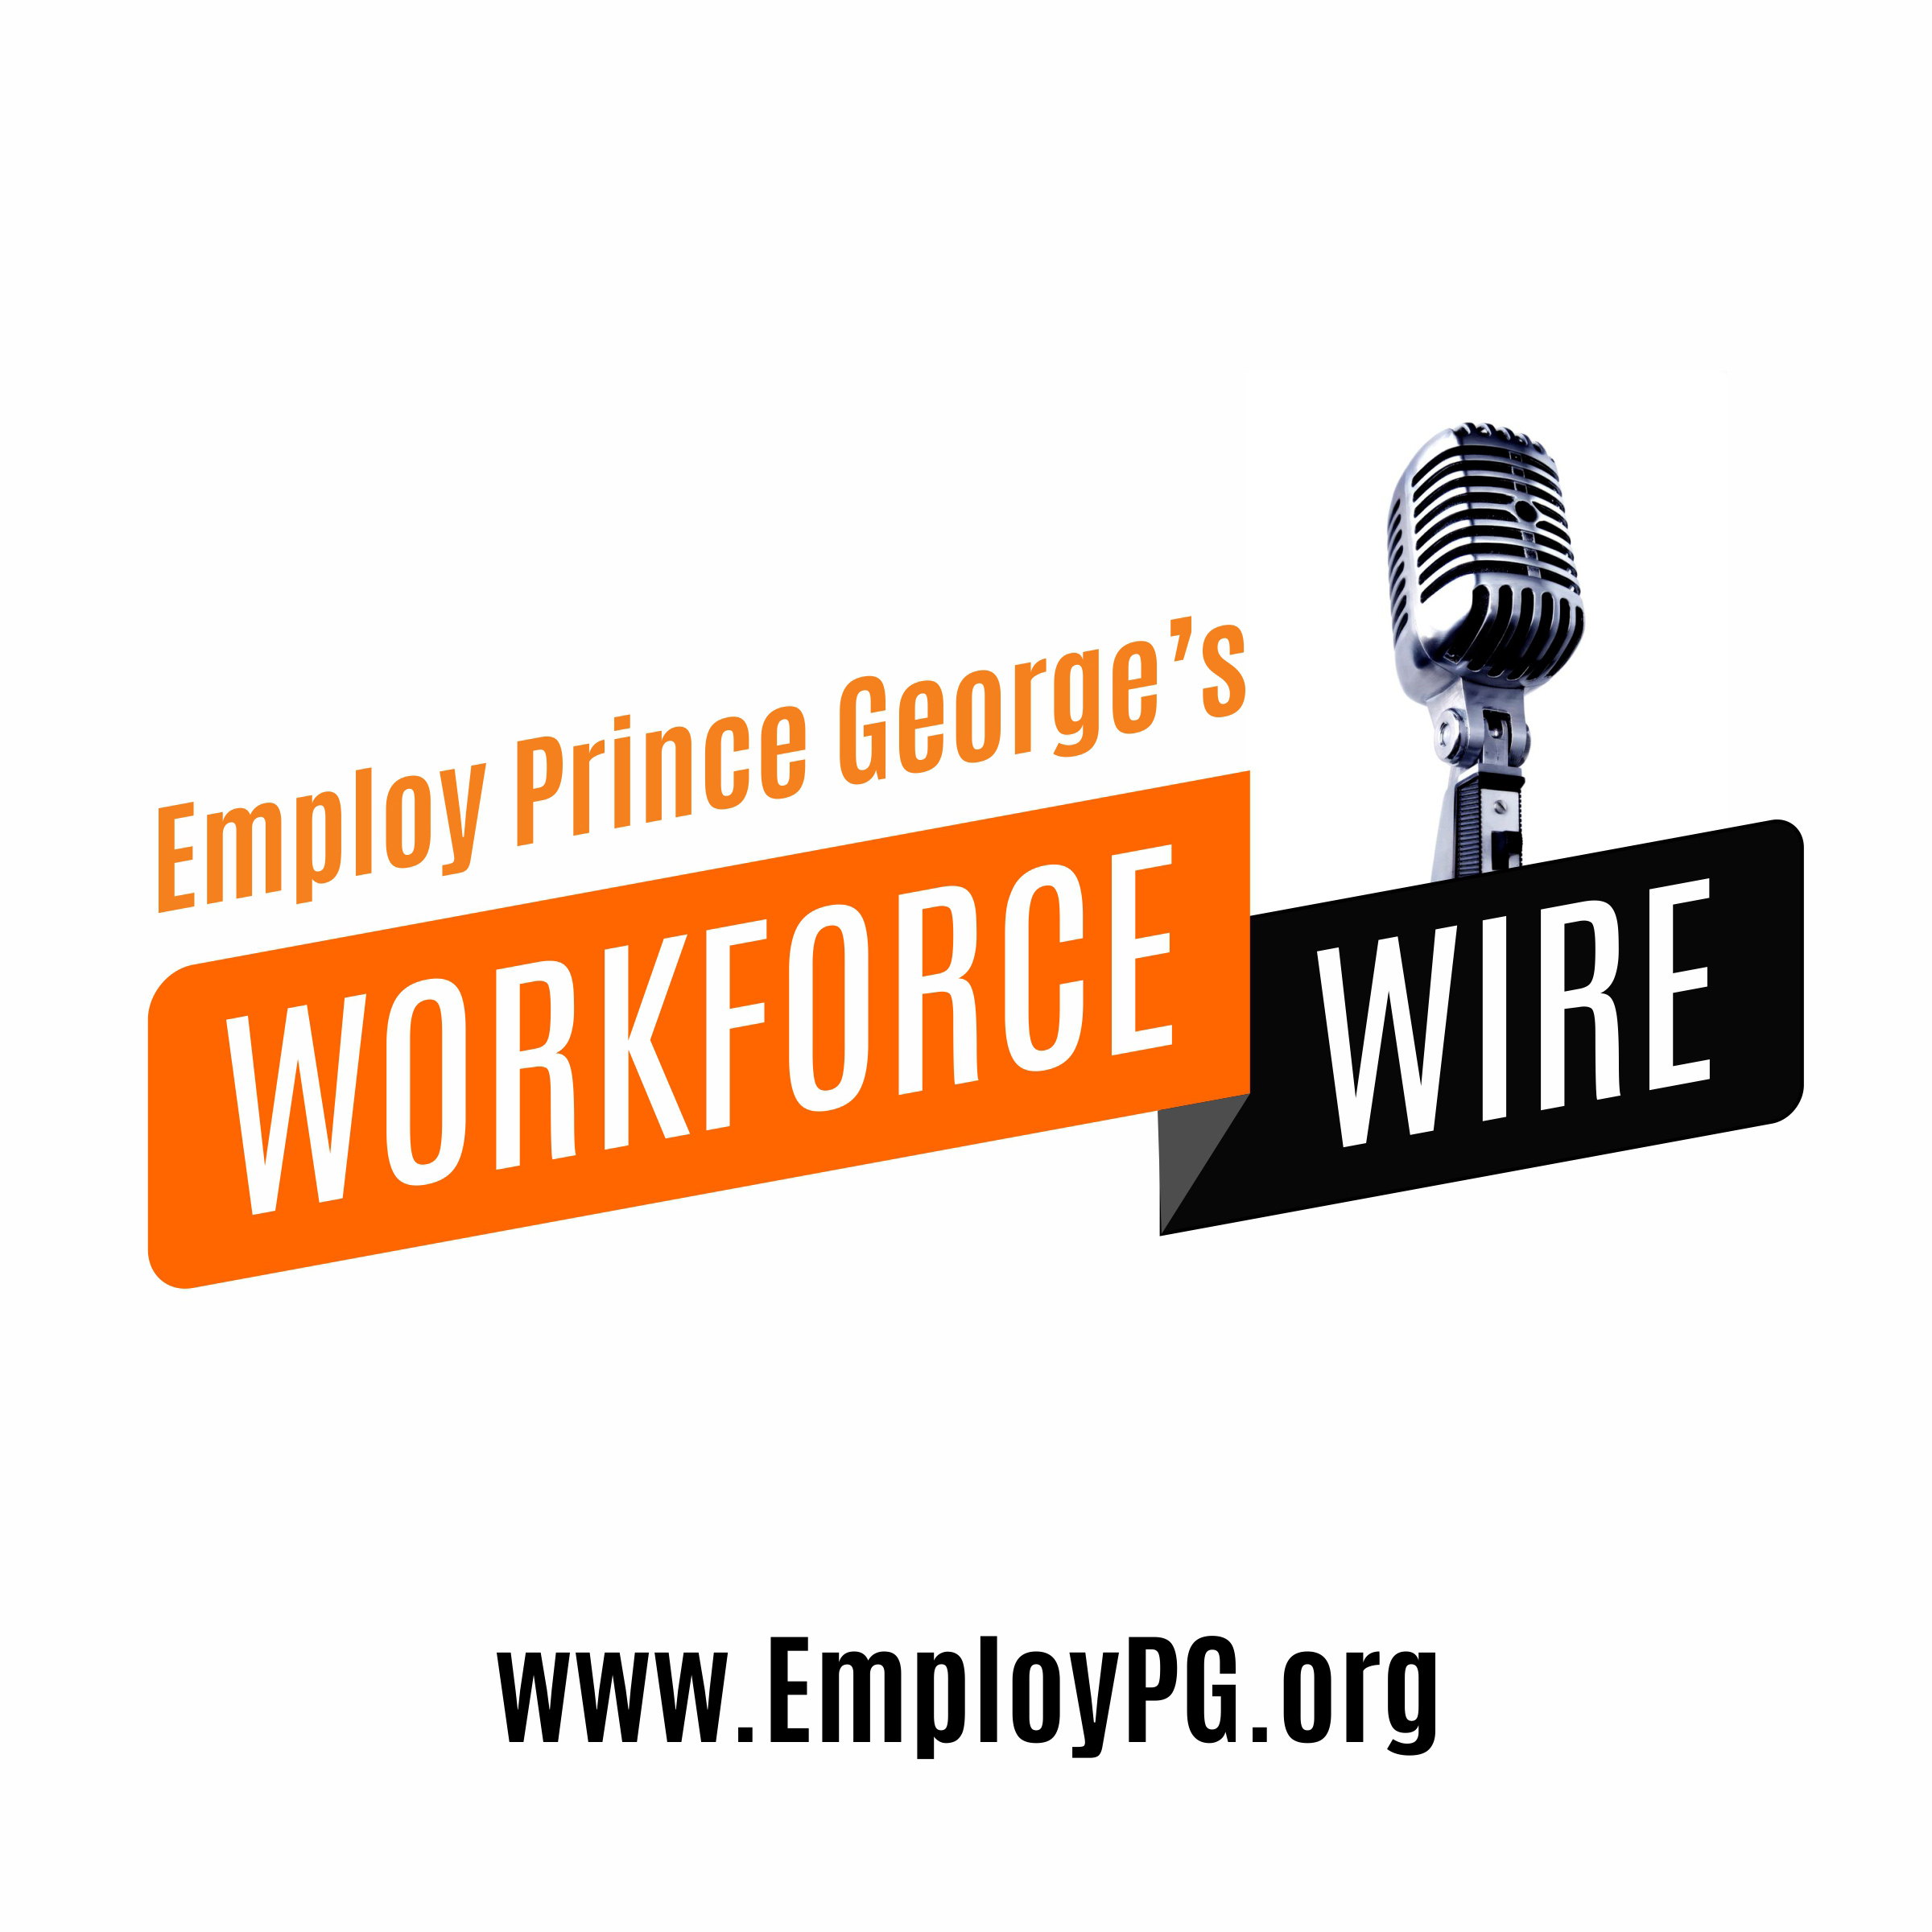 Employ Prince Georges (Workforce Wire)